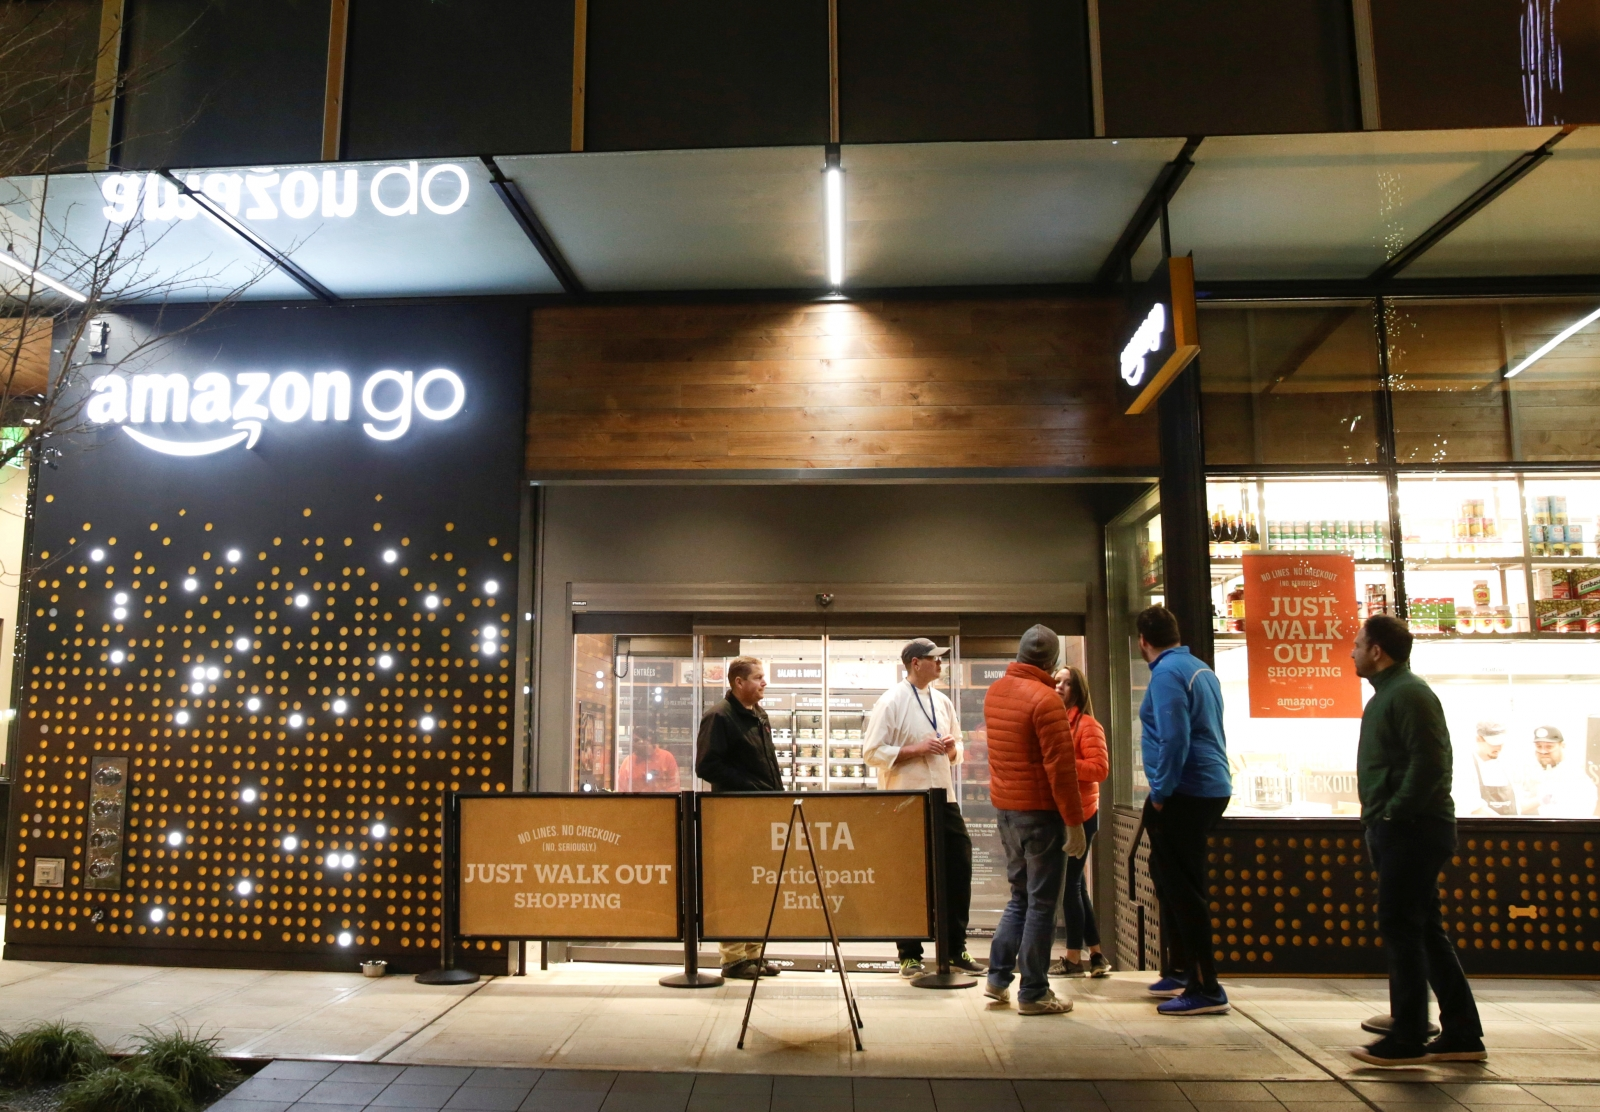 Amazon Go on its way to UK